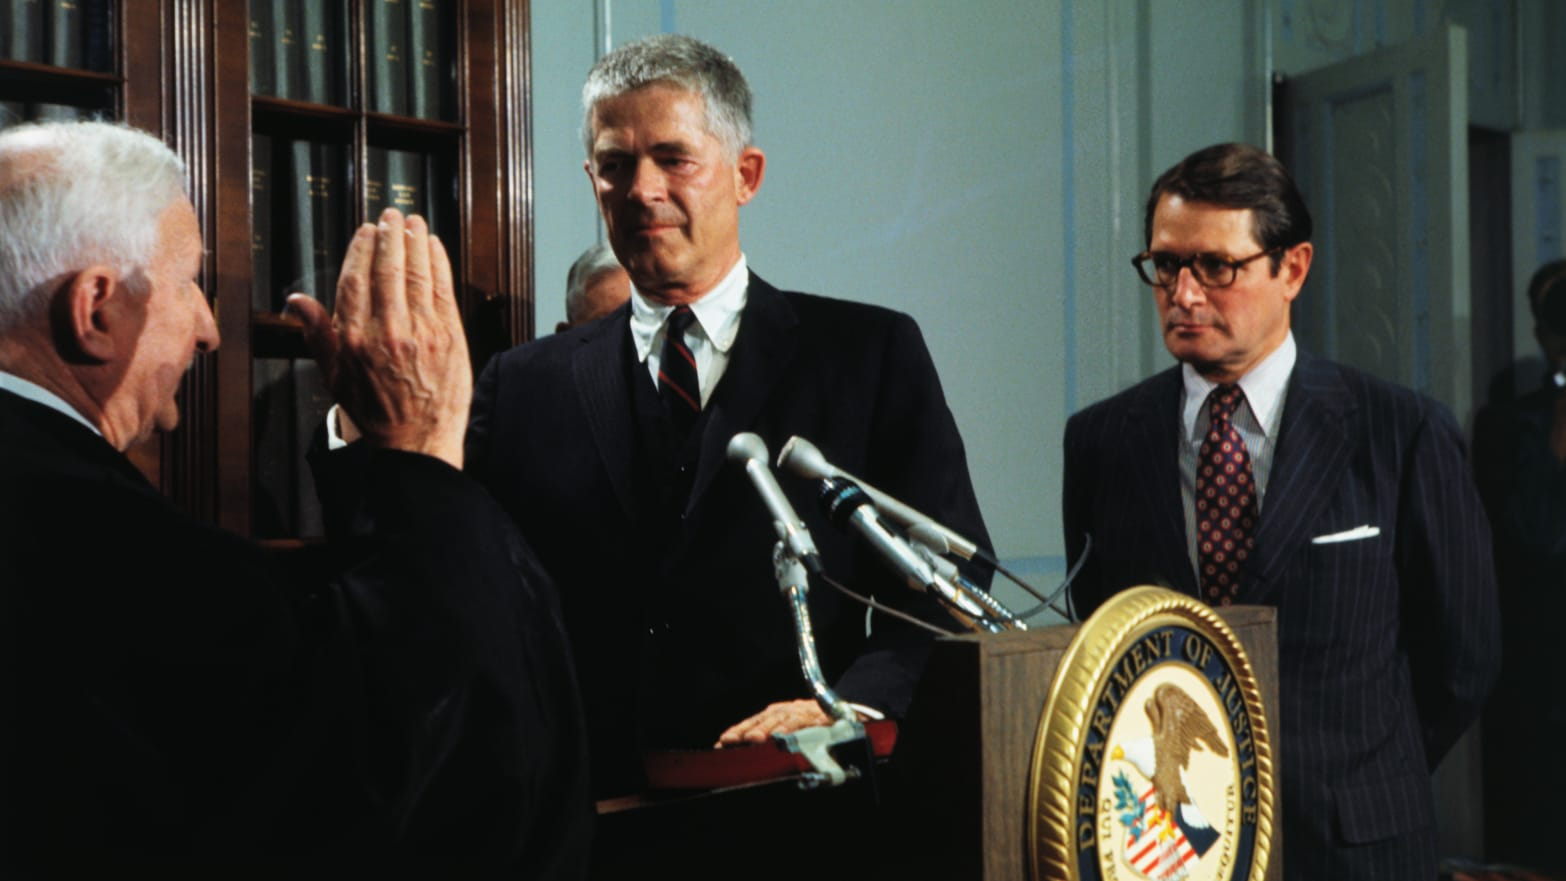 Archibald Cox sworn in as Special Watergate Prosecutor by Judge Charles Fahy of the District of Columbia Circuit Court with Attorney General Elliot Richardson witnessing